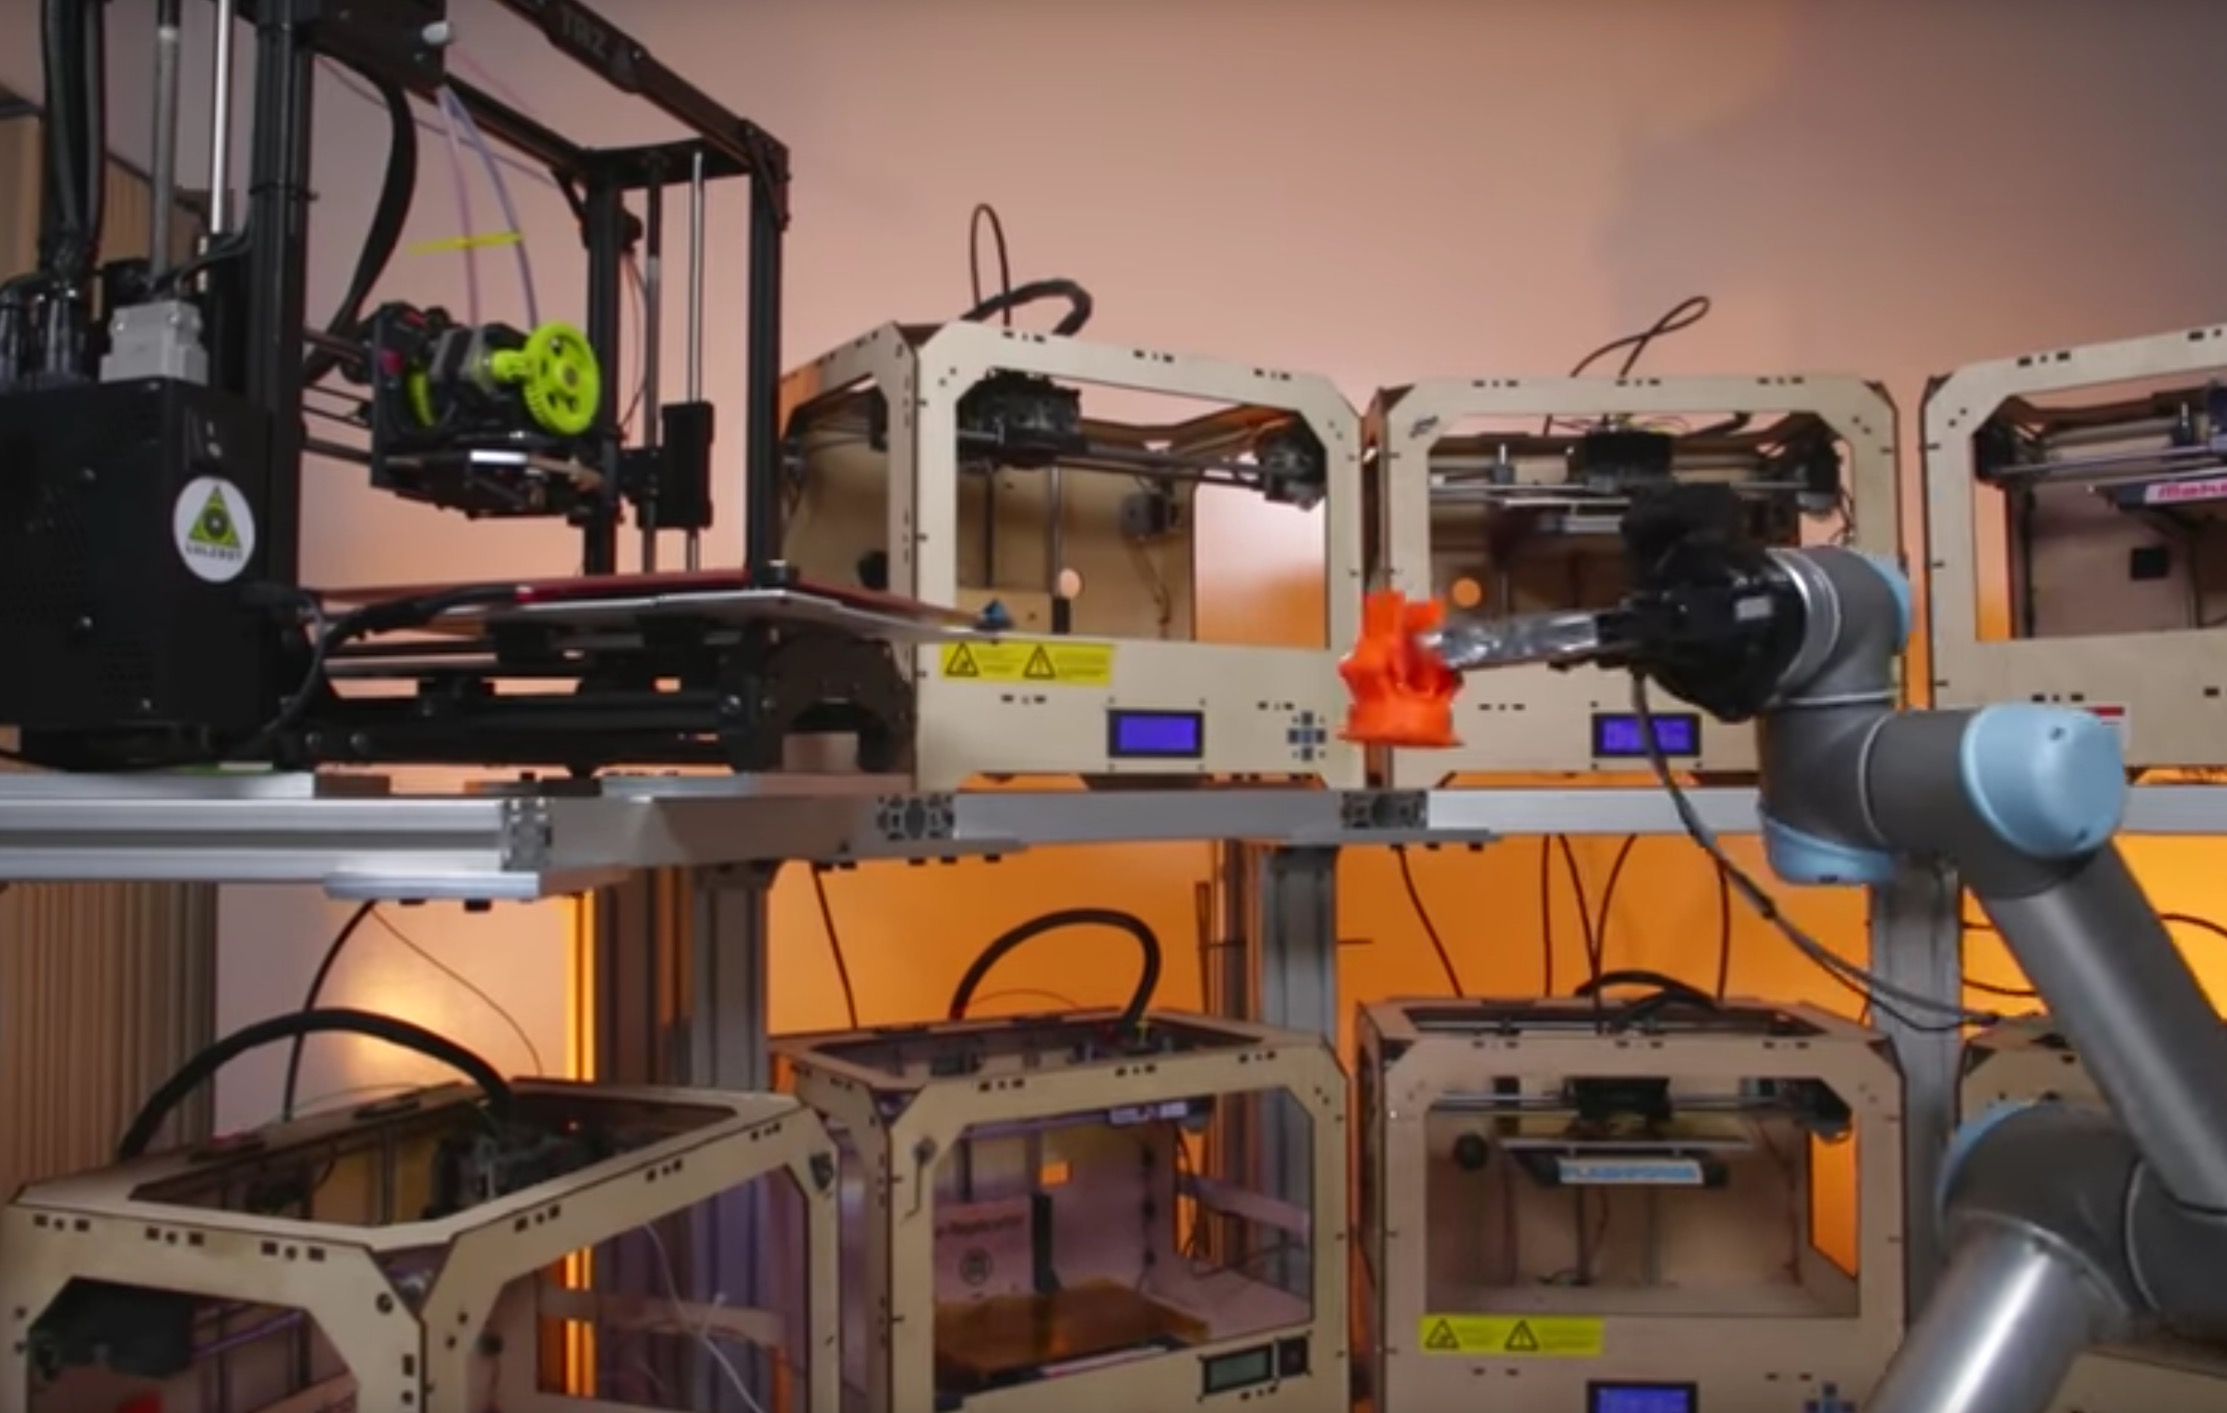 , Tend.ai Receives Funding for Their Robotic 3D Print Operator System